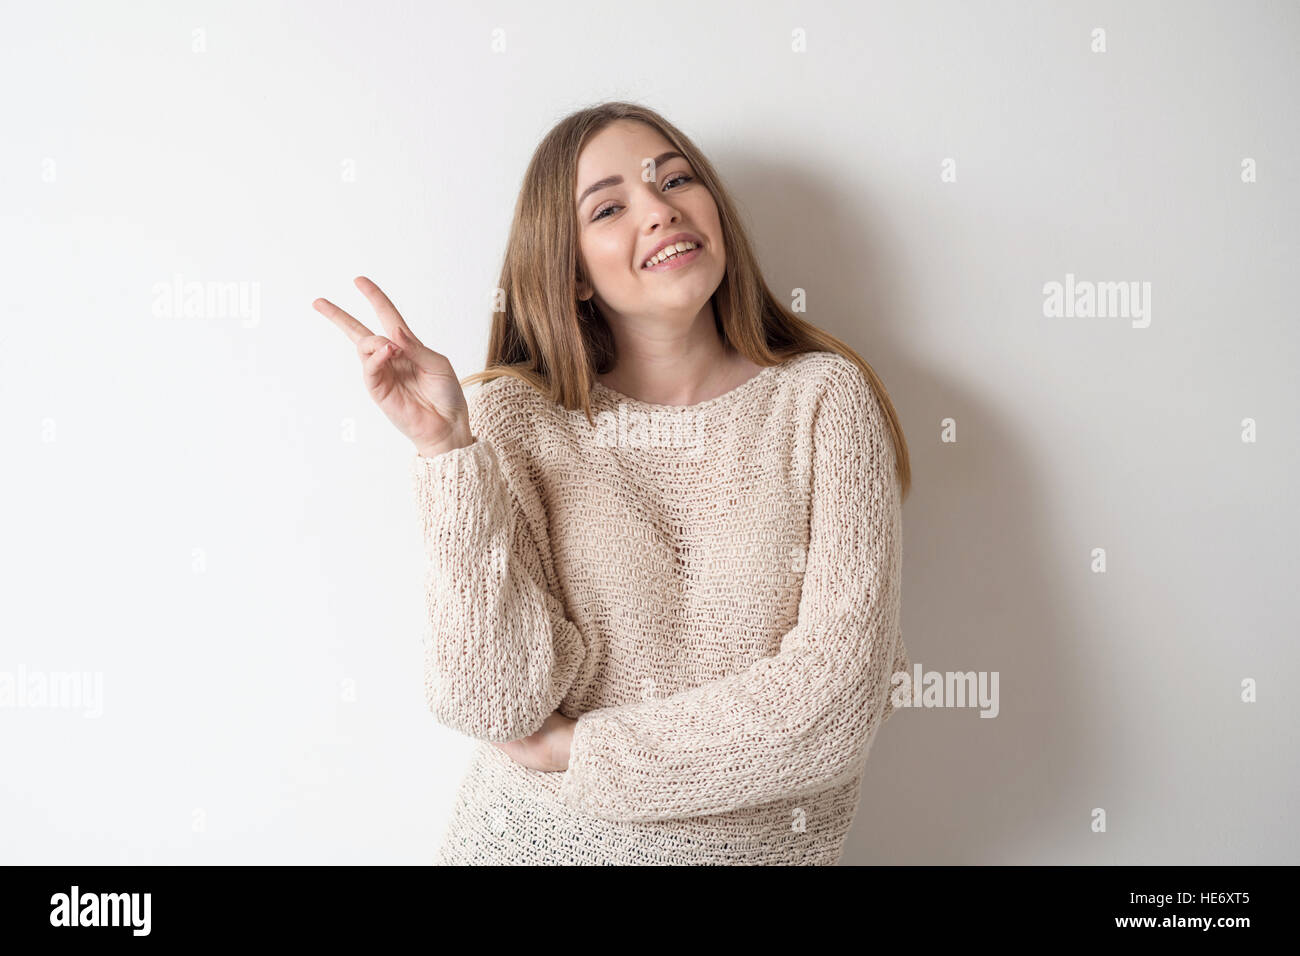 Funny girl showing the peace sign - Stock Image